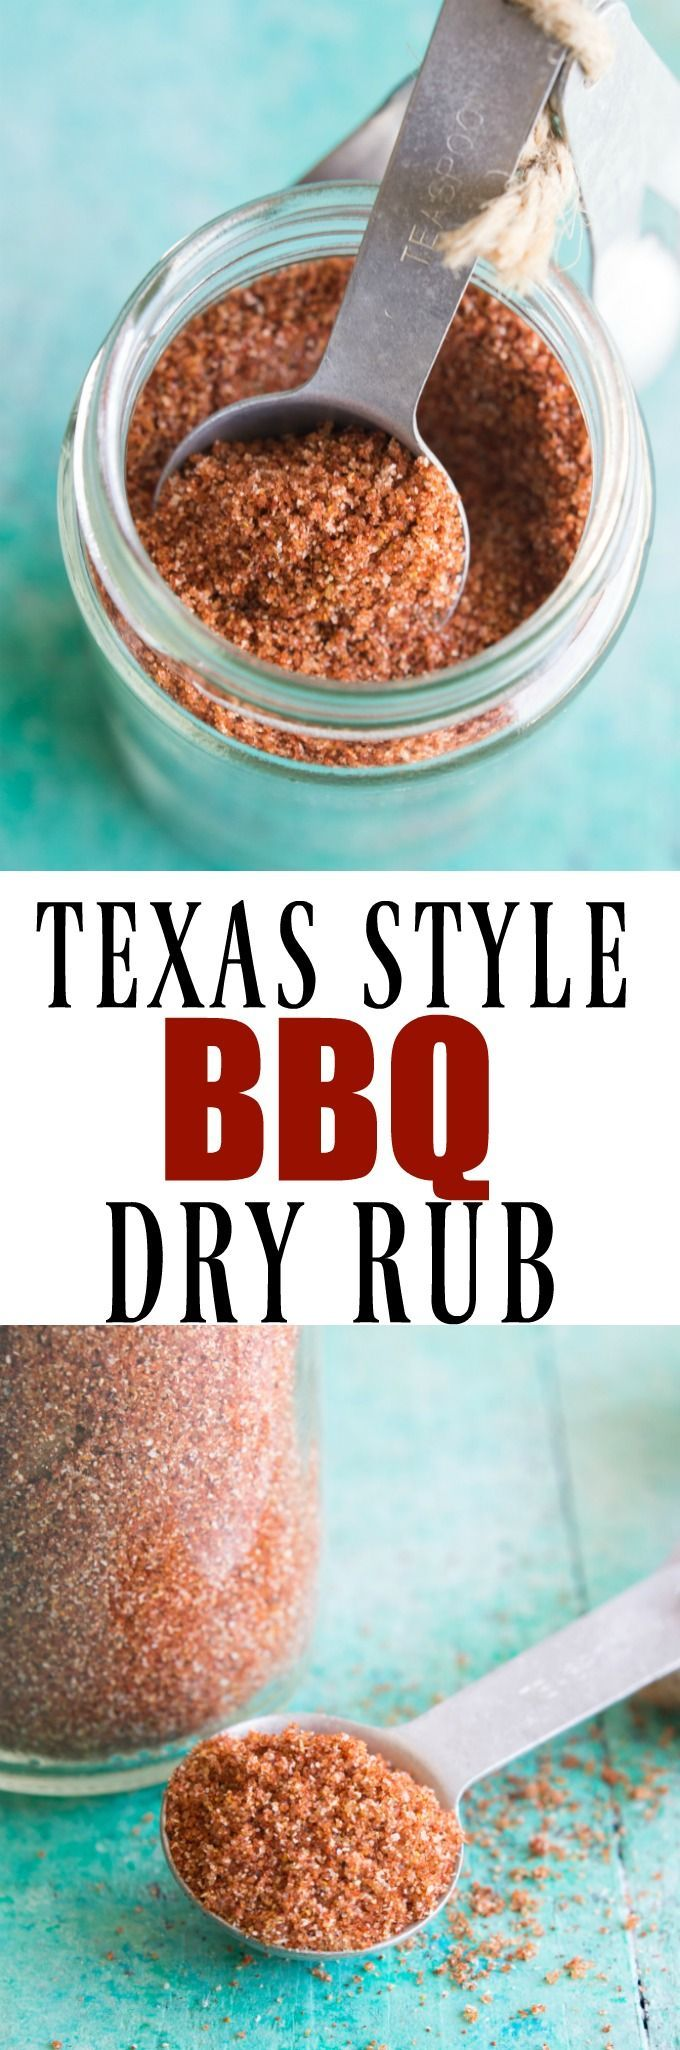 Texas Style BBQ Dry Rub. This sweet and spicy dry rub is perfect for all your grilling and BBQ needs! The sweet brown sugar mingled with the spicy chili powder gives the best of both worlds. This rub is perfect for steaks, chicken, pork, anything you desire!